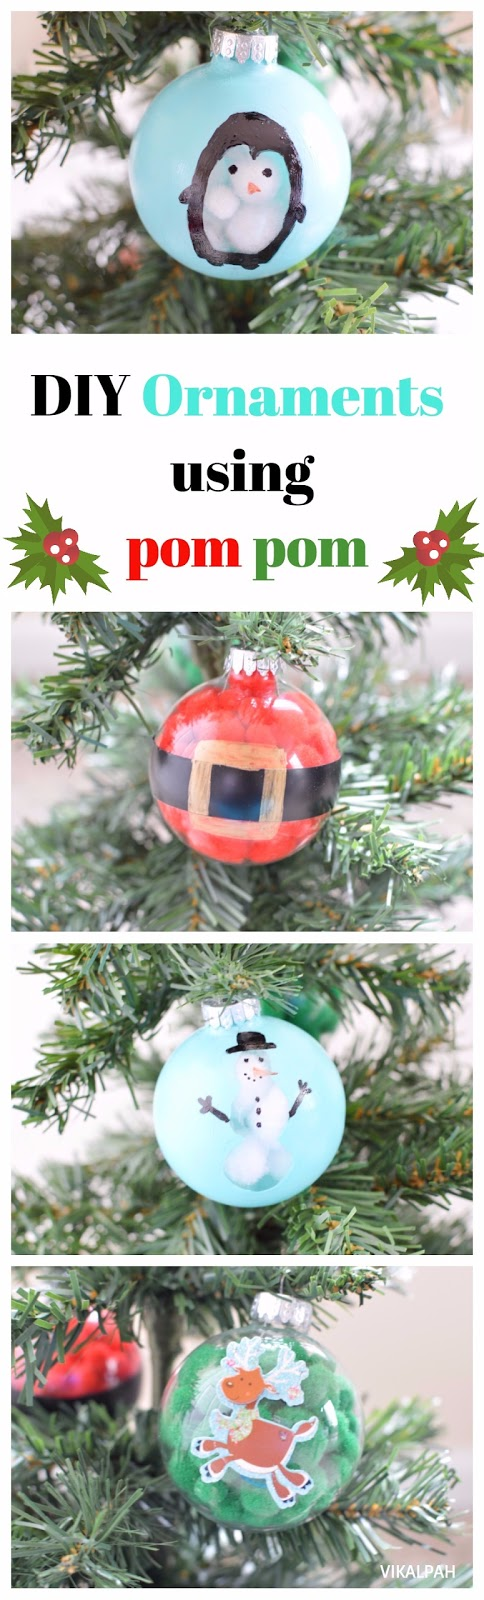 clear ornament ideas using pom pom